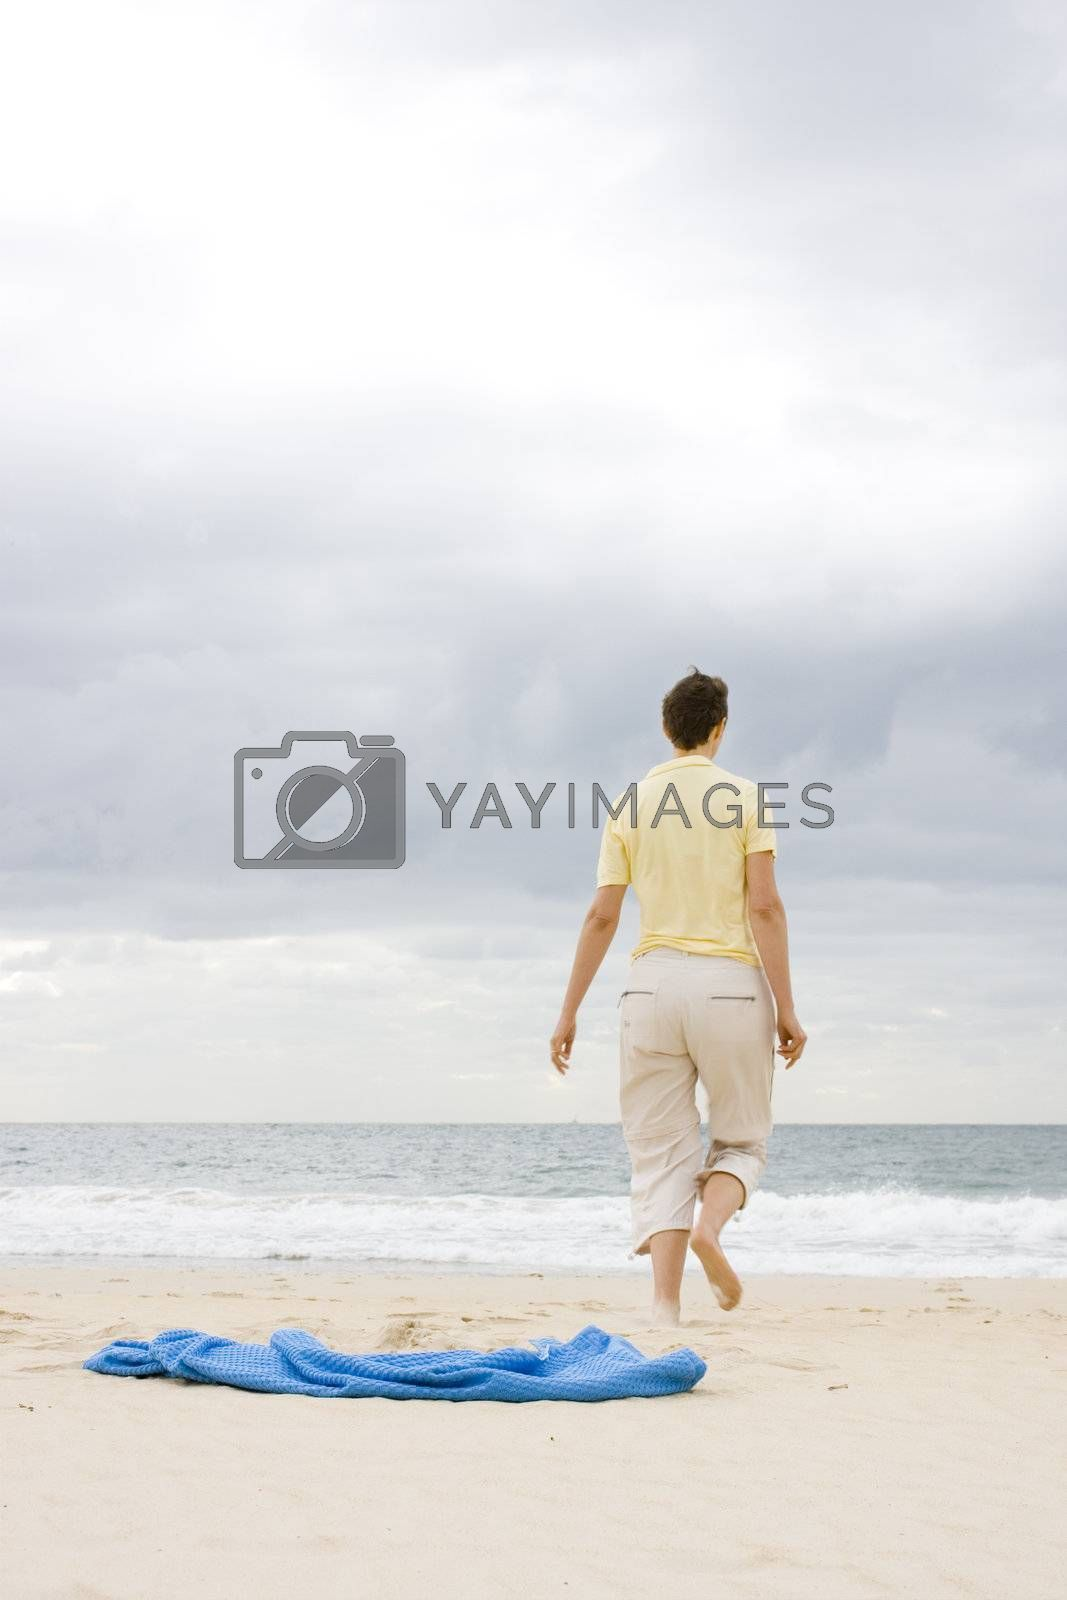 Woman walking on a beach. Focus on the towel in the foreground